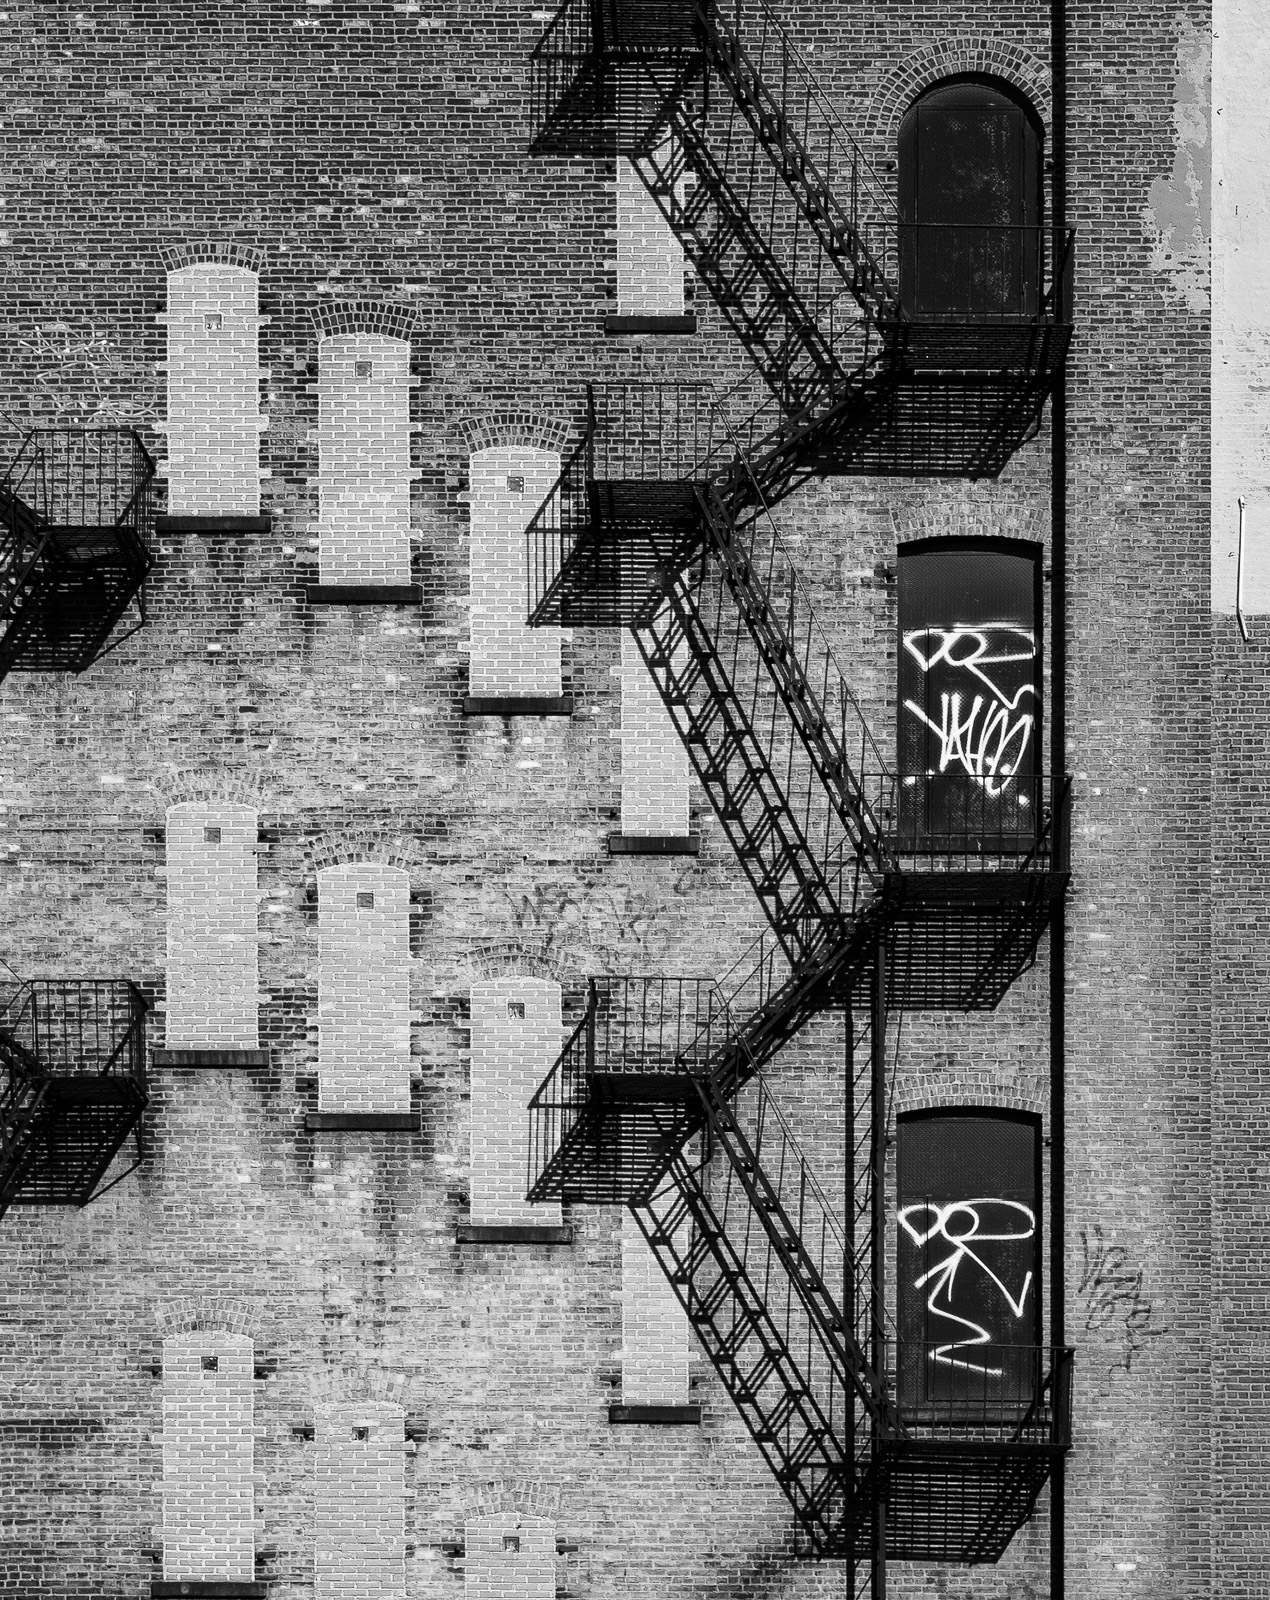 Back wall of apartment block, New York